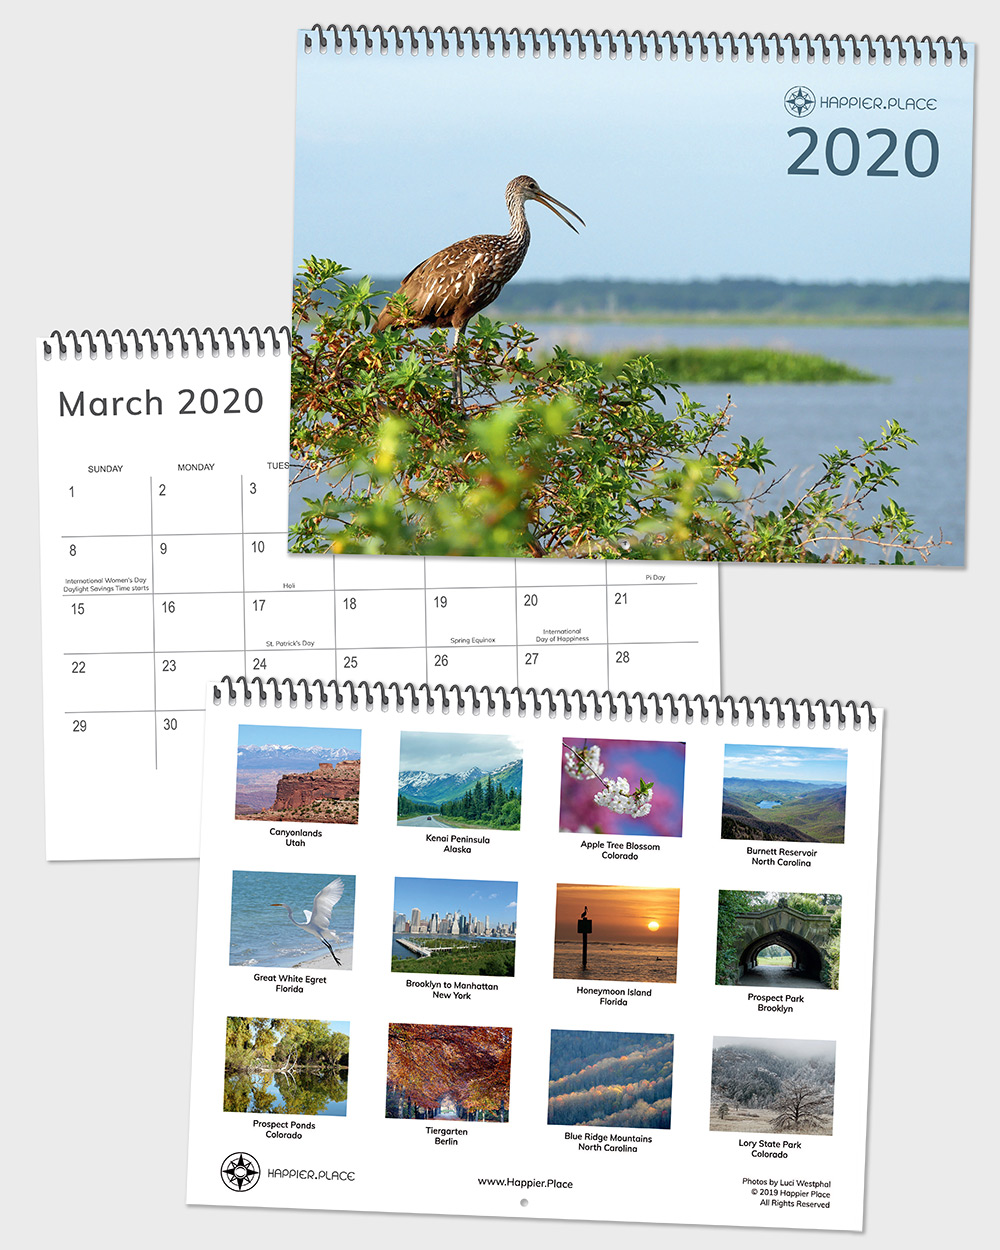 The Happier Place 2020 Nature Photography Monthly Wall Calendar is here to make 2020 a happier year! Let the nature photos and inspiring words encourage you every month. And don't miss any dates to celebrate or remember. Nature, landscape, bird, and plants photographed in the Great Outdoors and urban oasis across the USA and Europe.  #HappierPlace #2020calendar #calendar #naturephotography